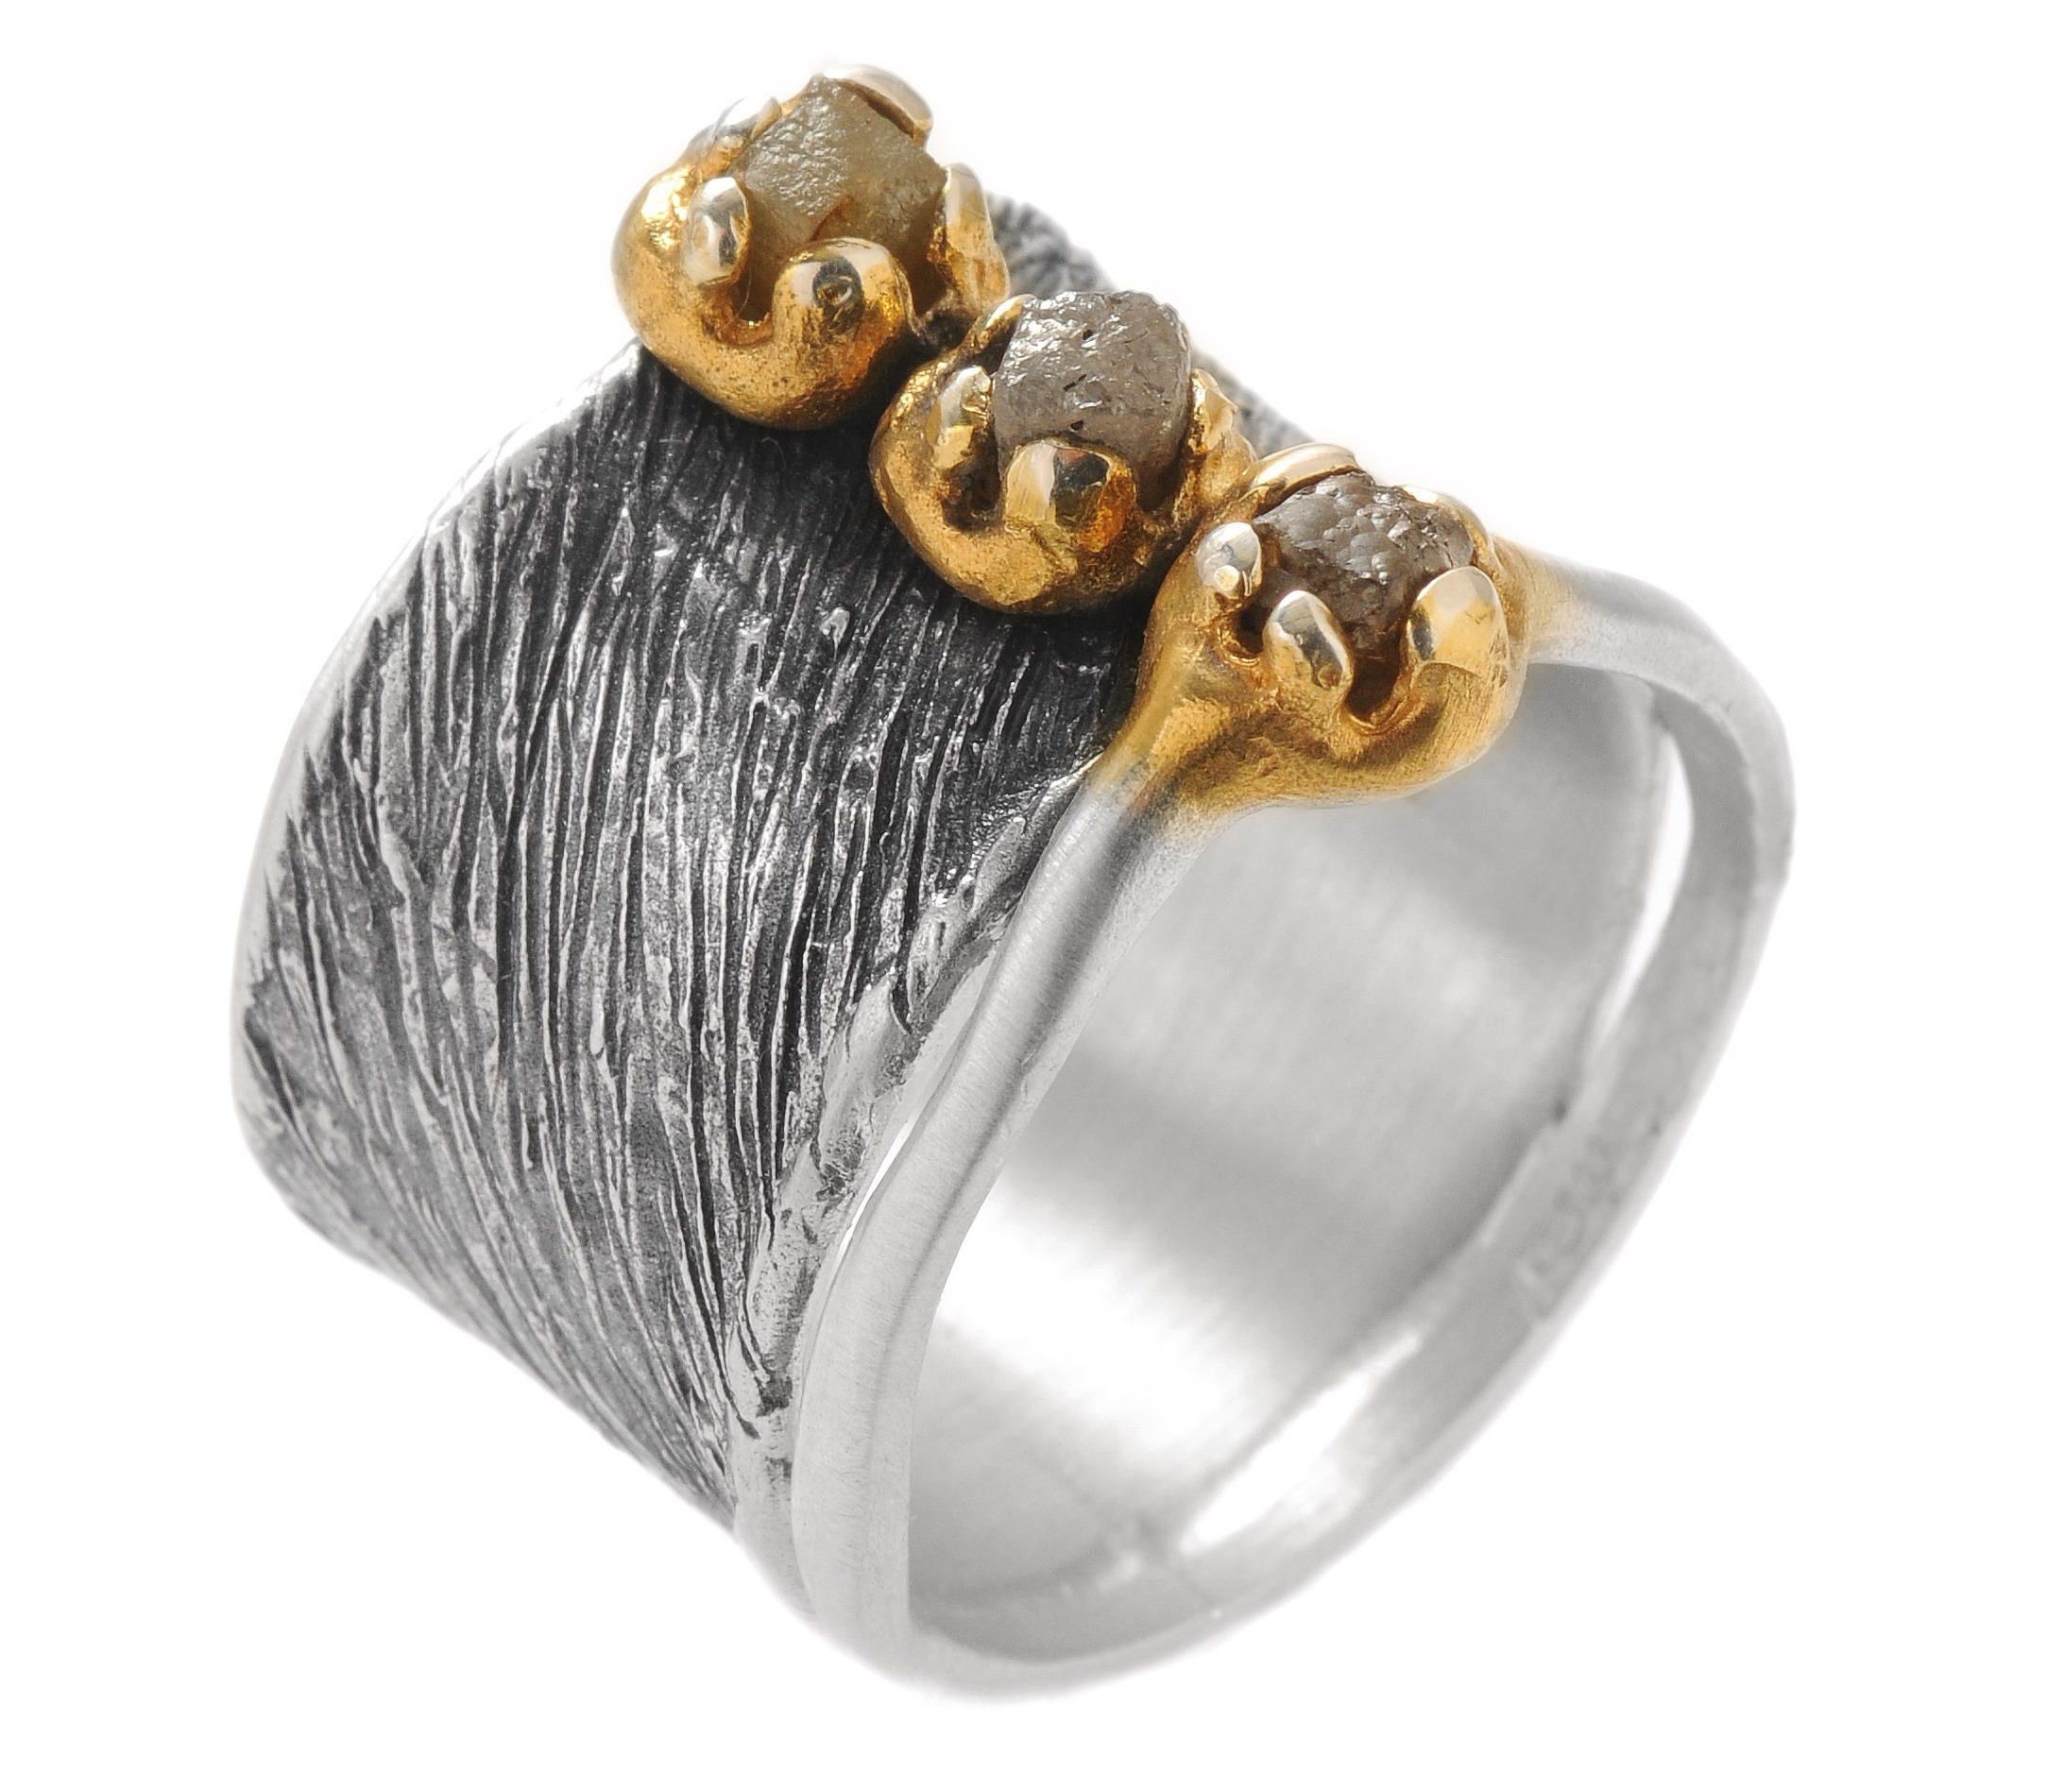 Ring in sterling silver with raw diamonds